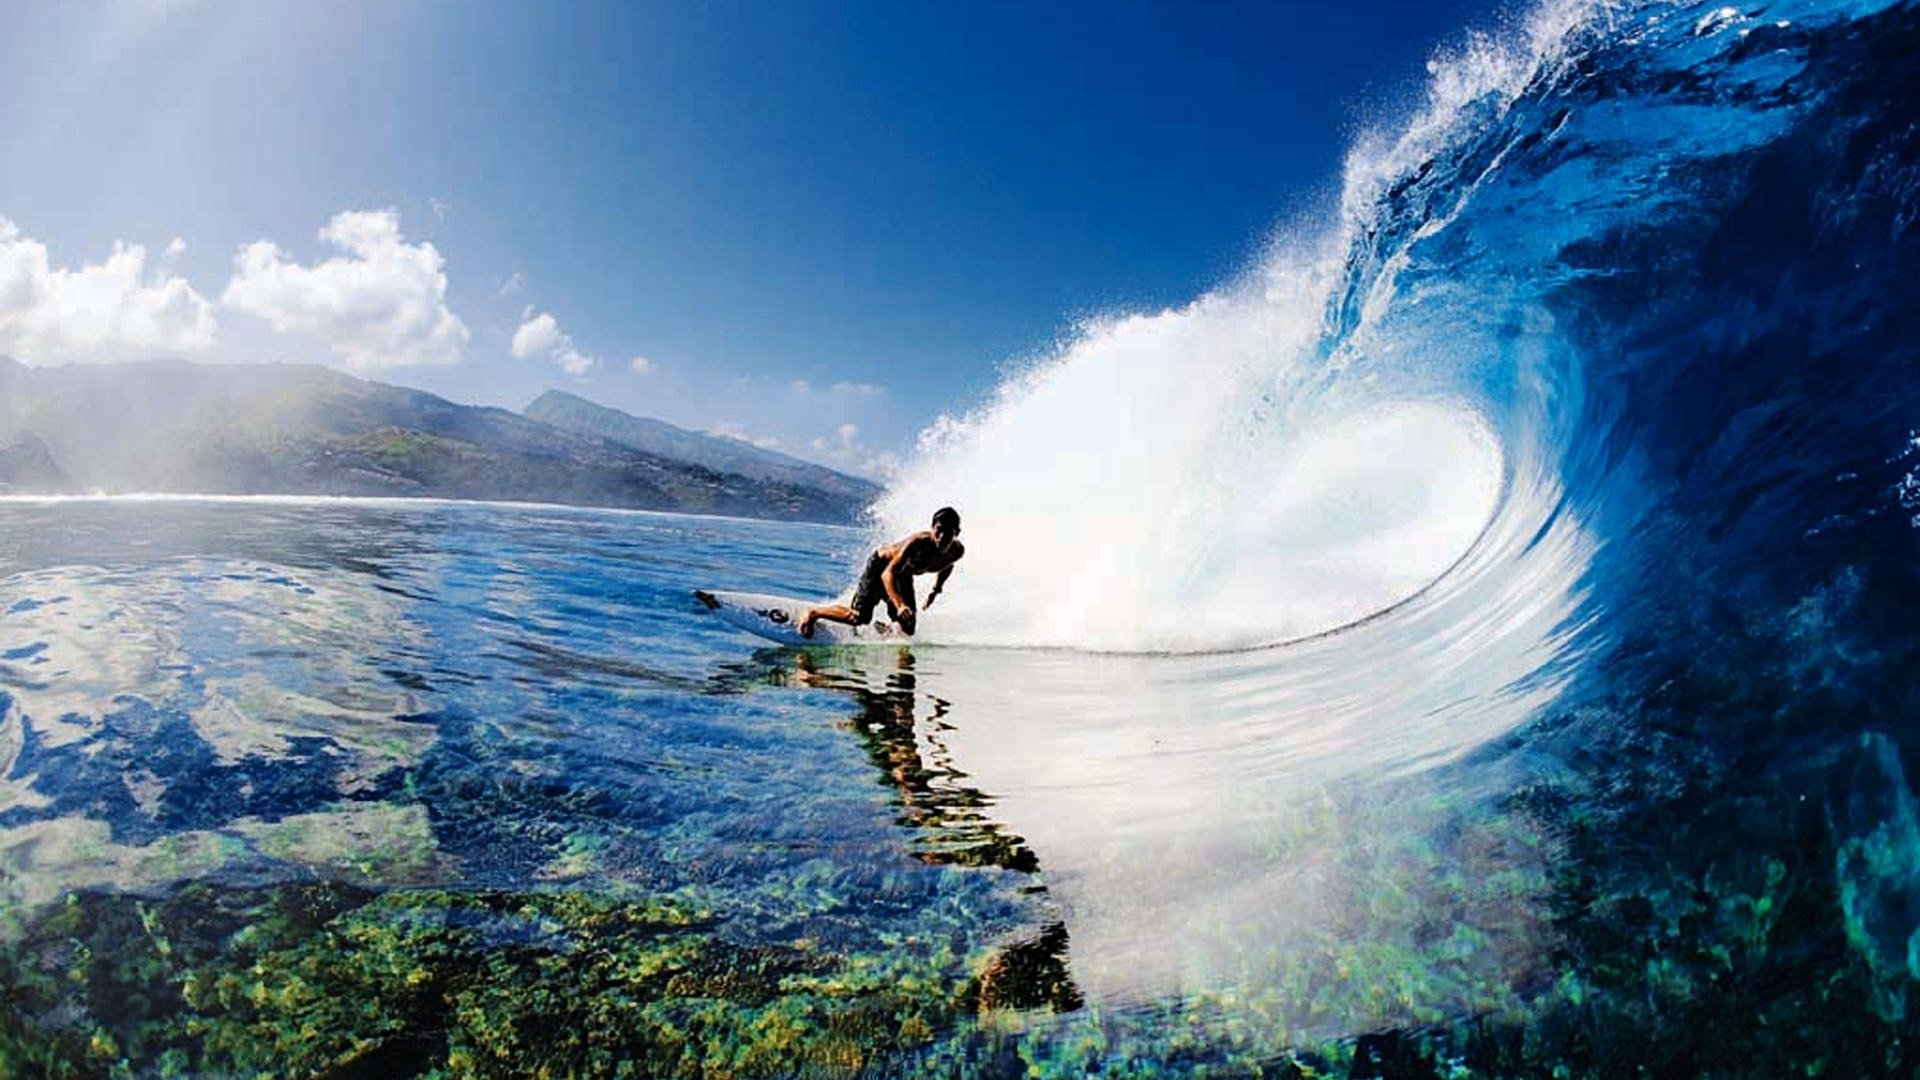 HD Surf Wallpapers